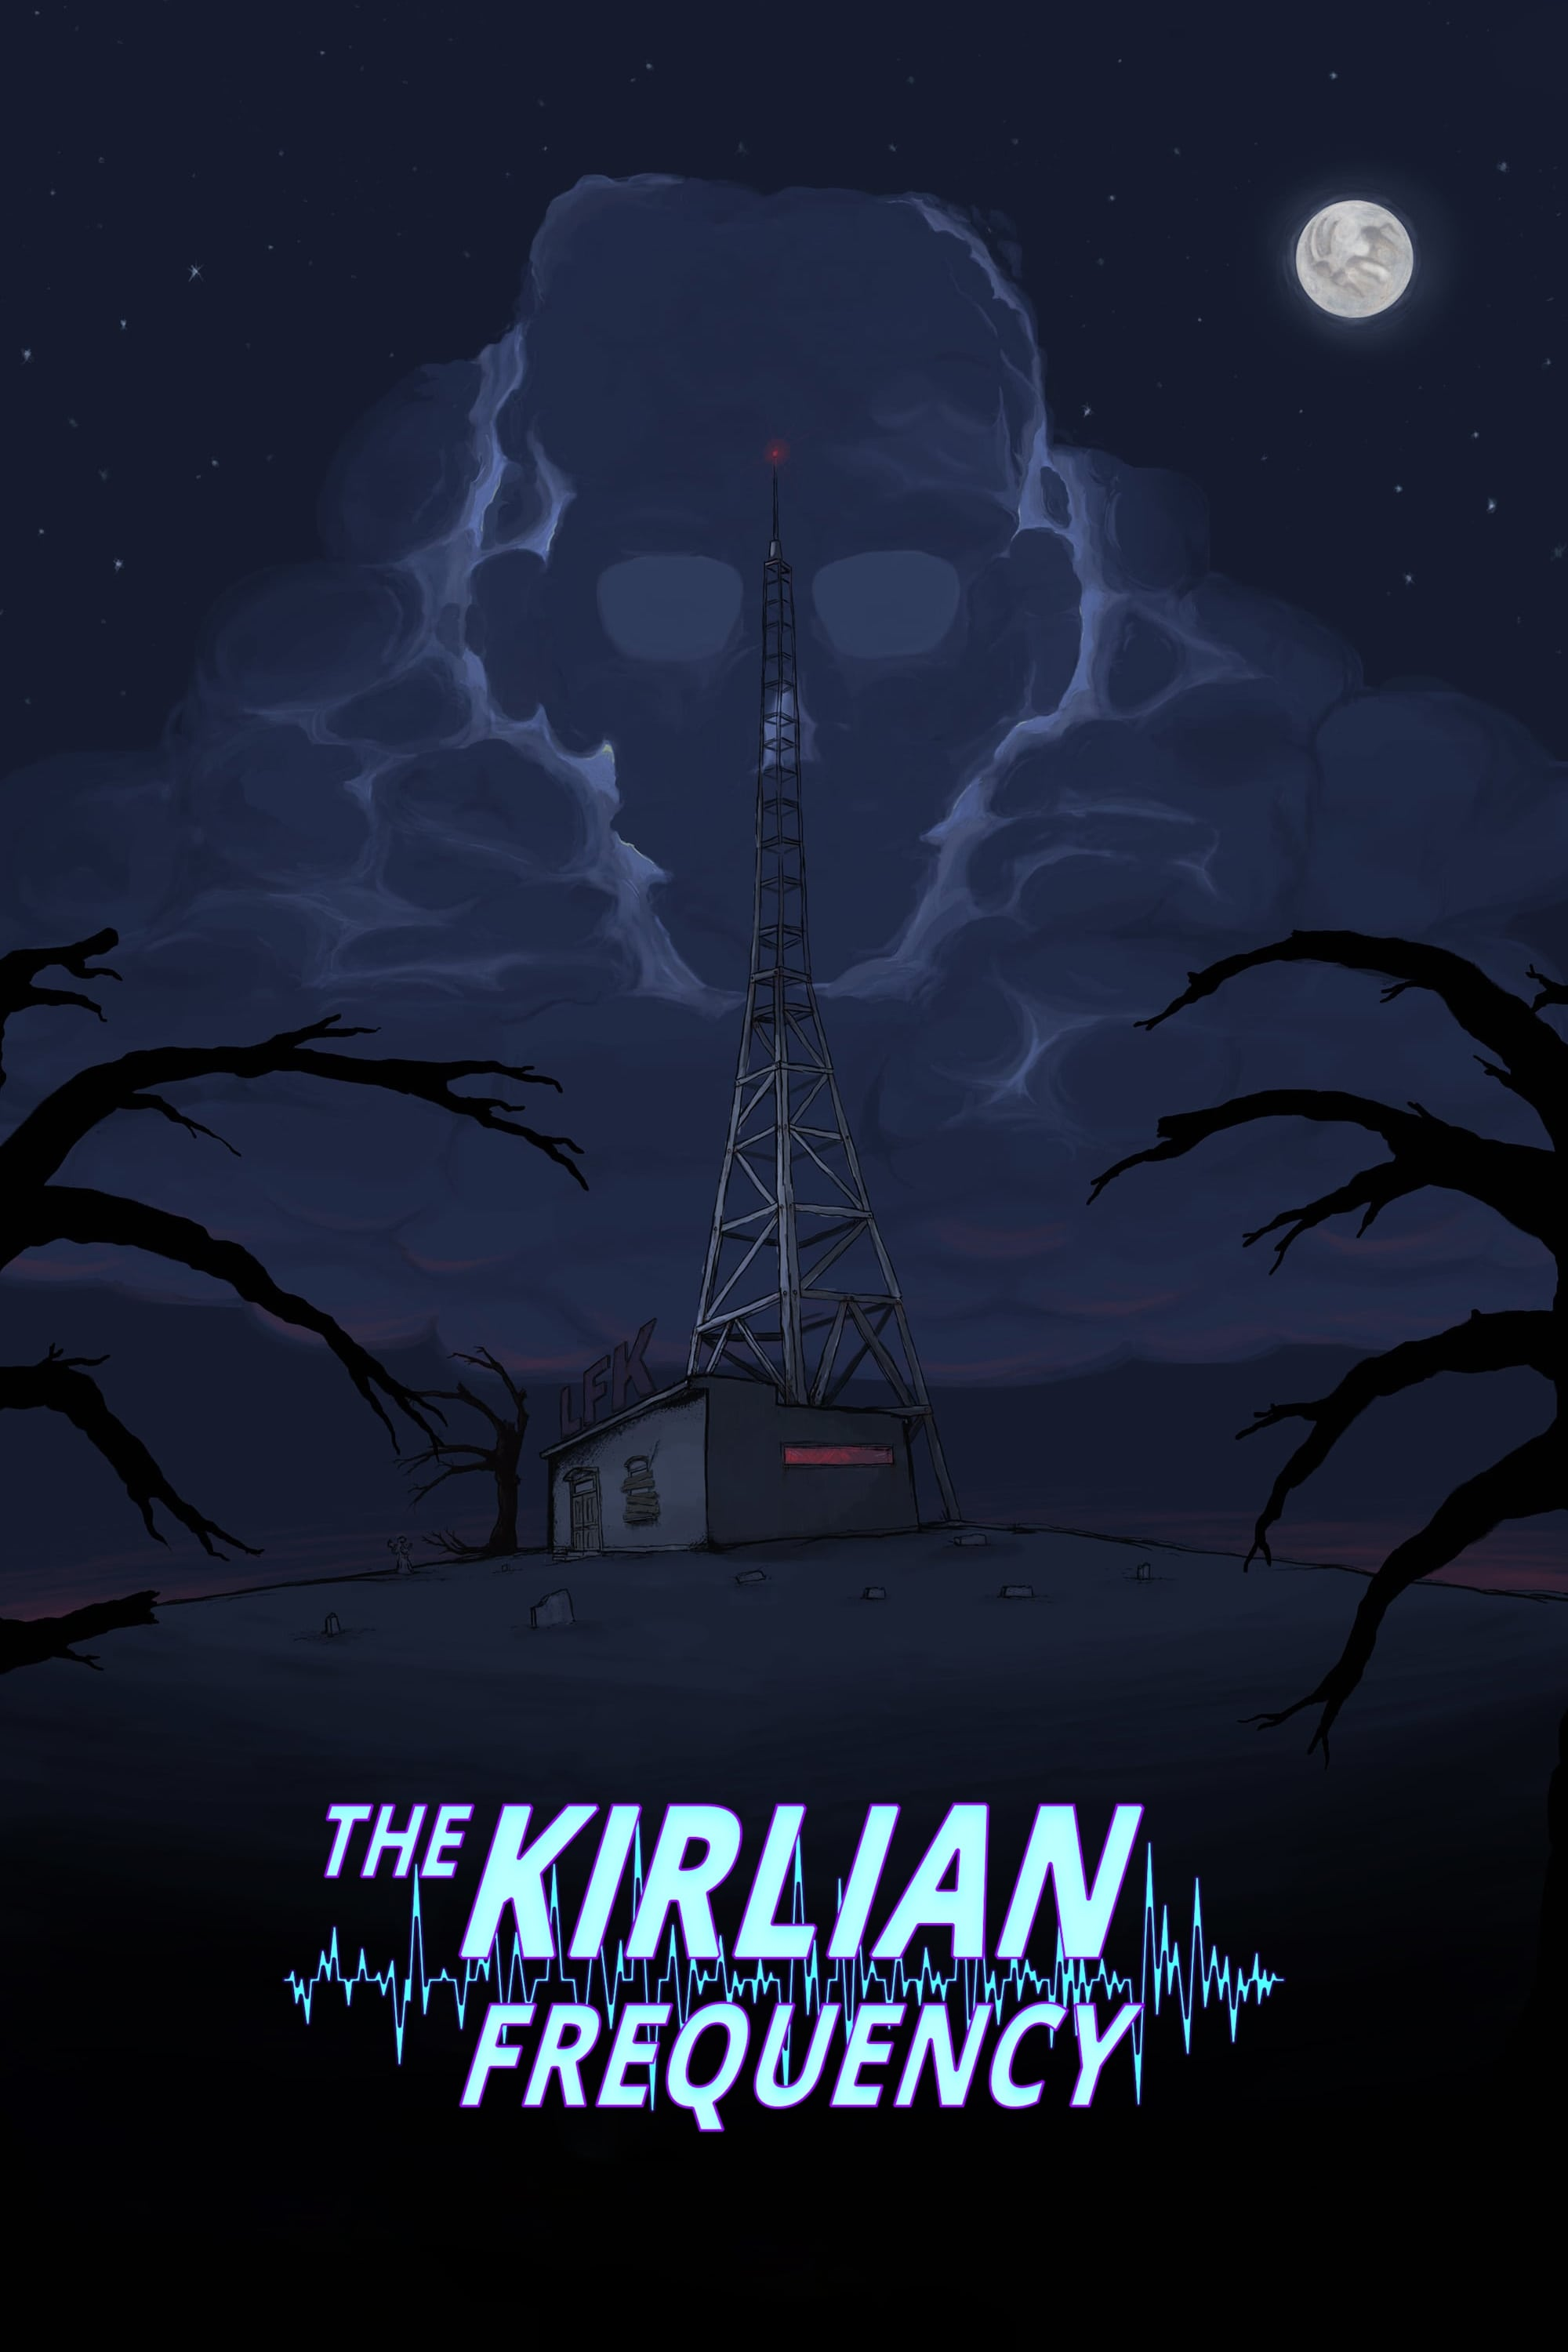 A Frequência Kirlian 1ª Temporada Completa (2019) Torrent - WEB-DL 1080p Dublado Download